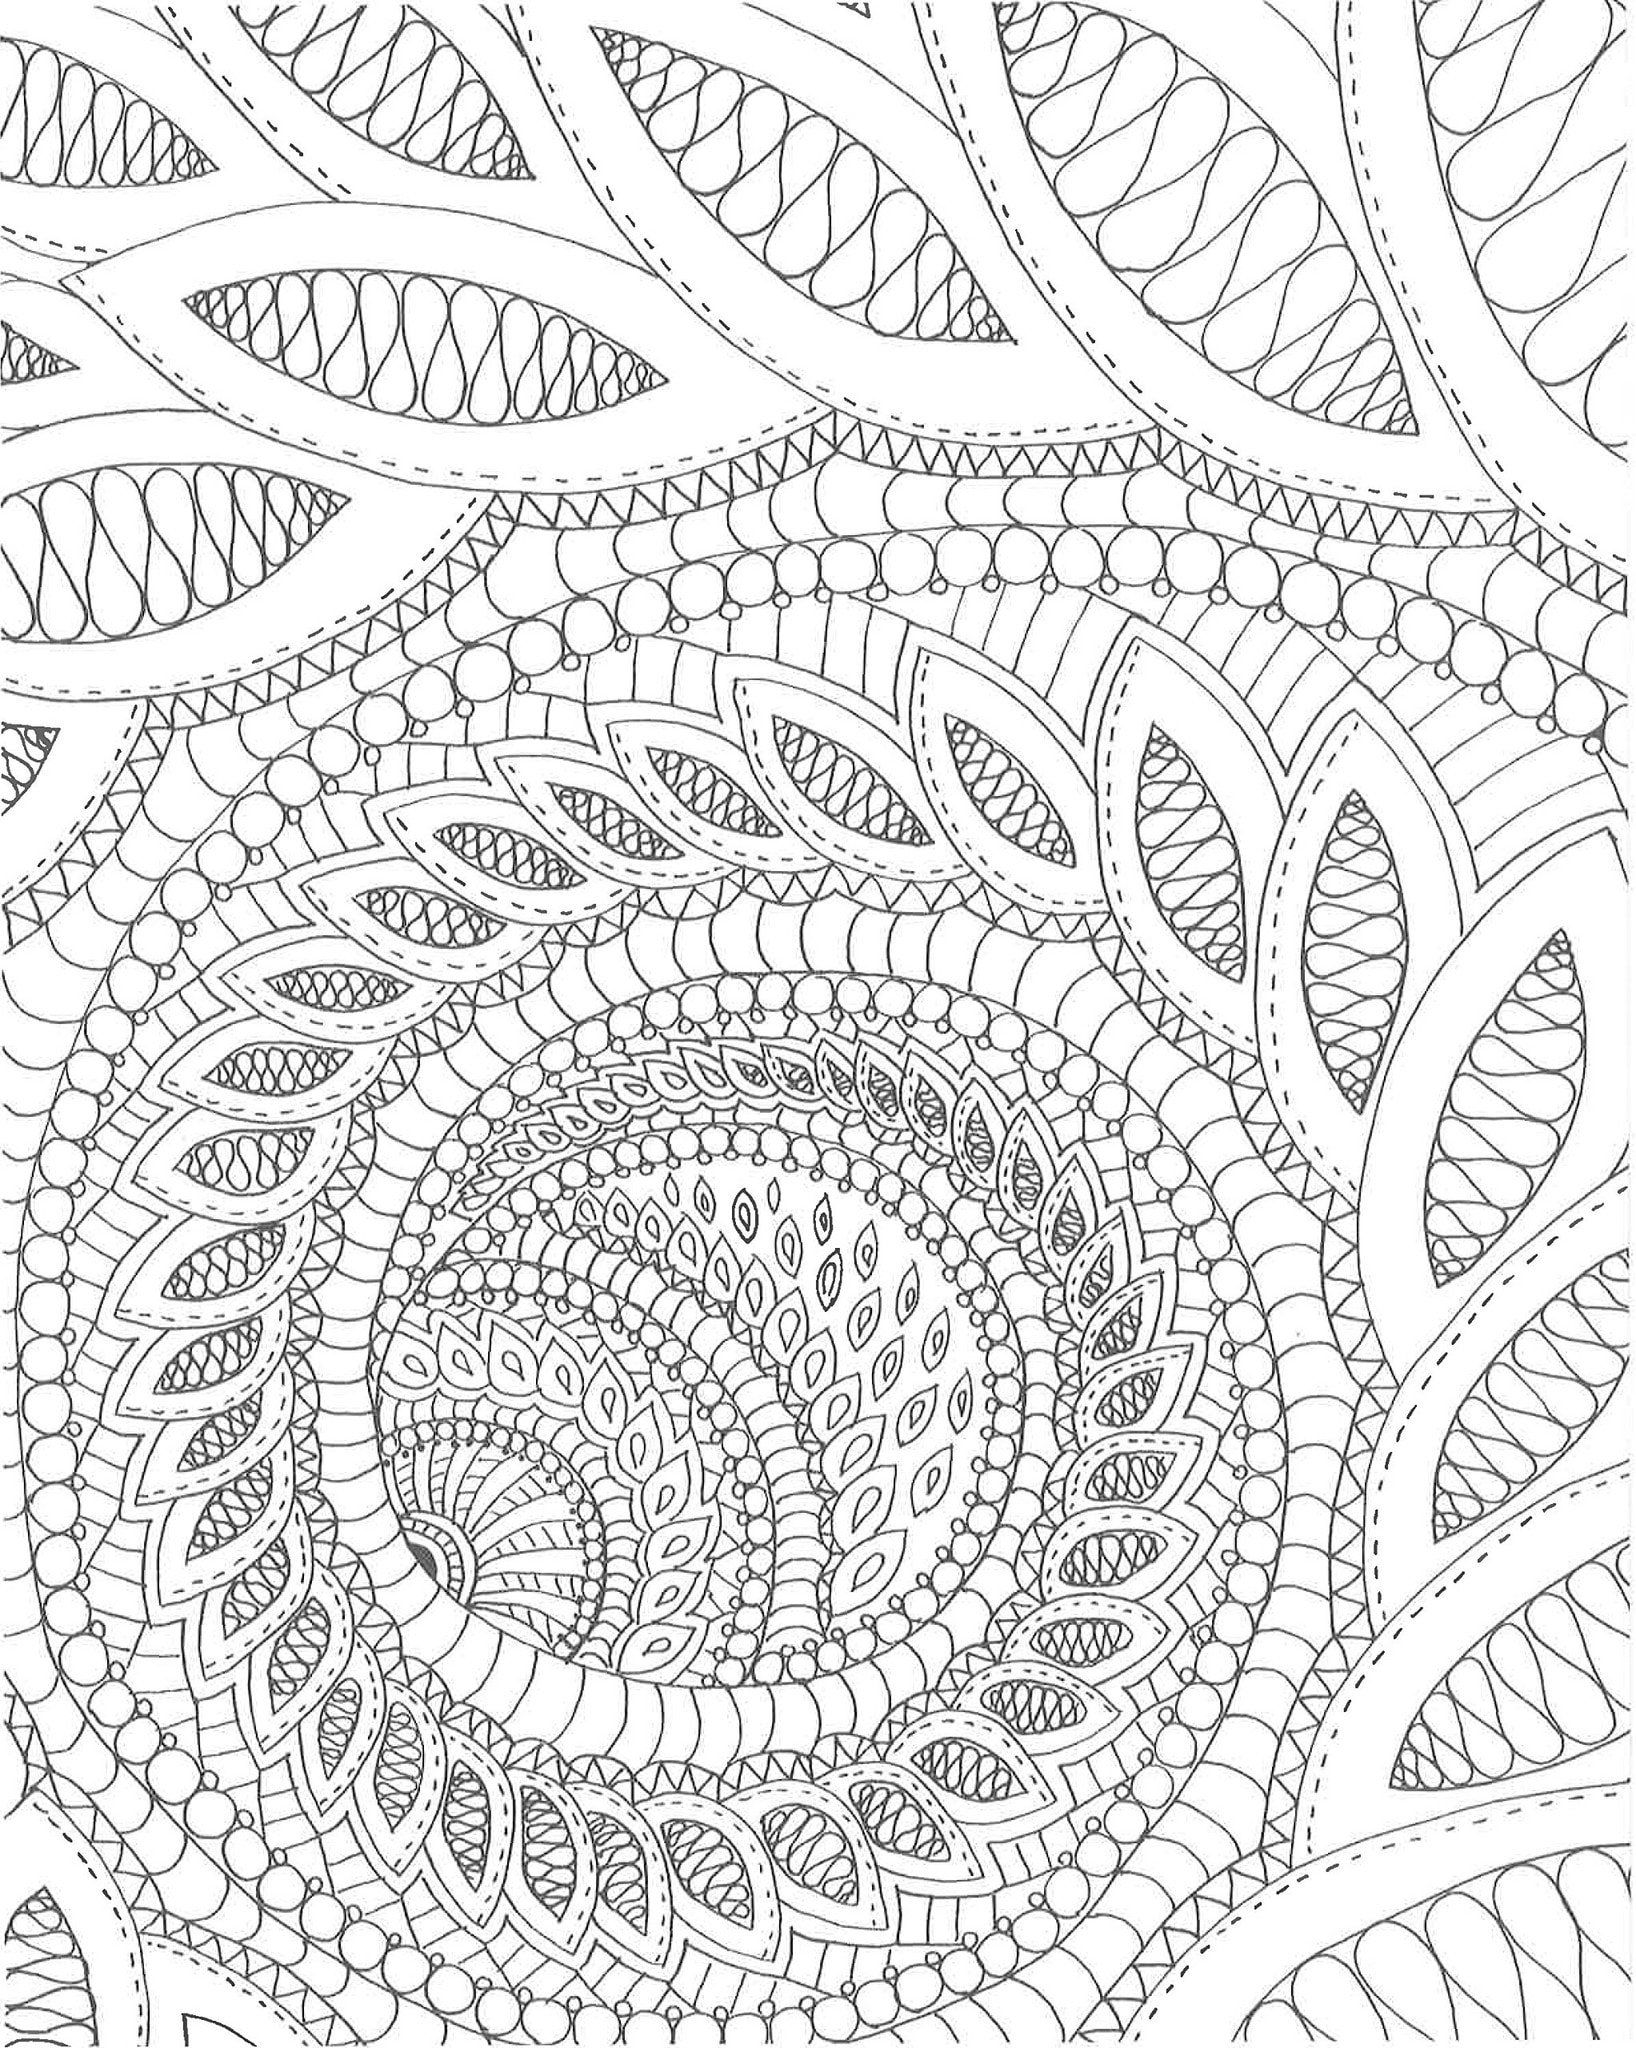 Calming Swirls Stress Relieving Designs To Color And Display